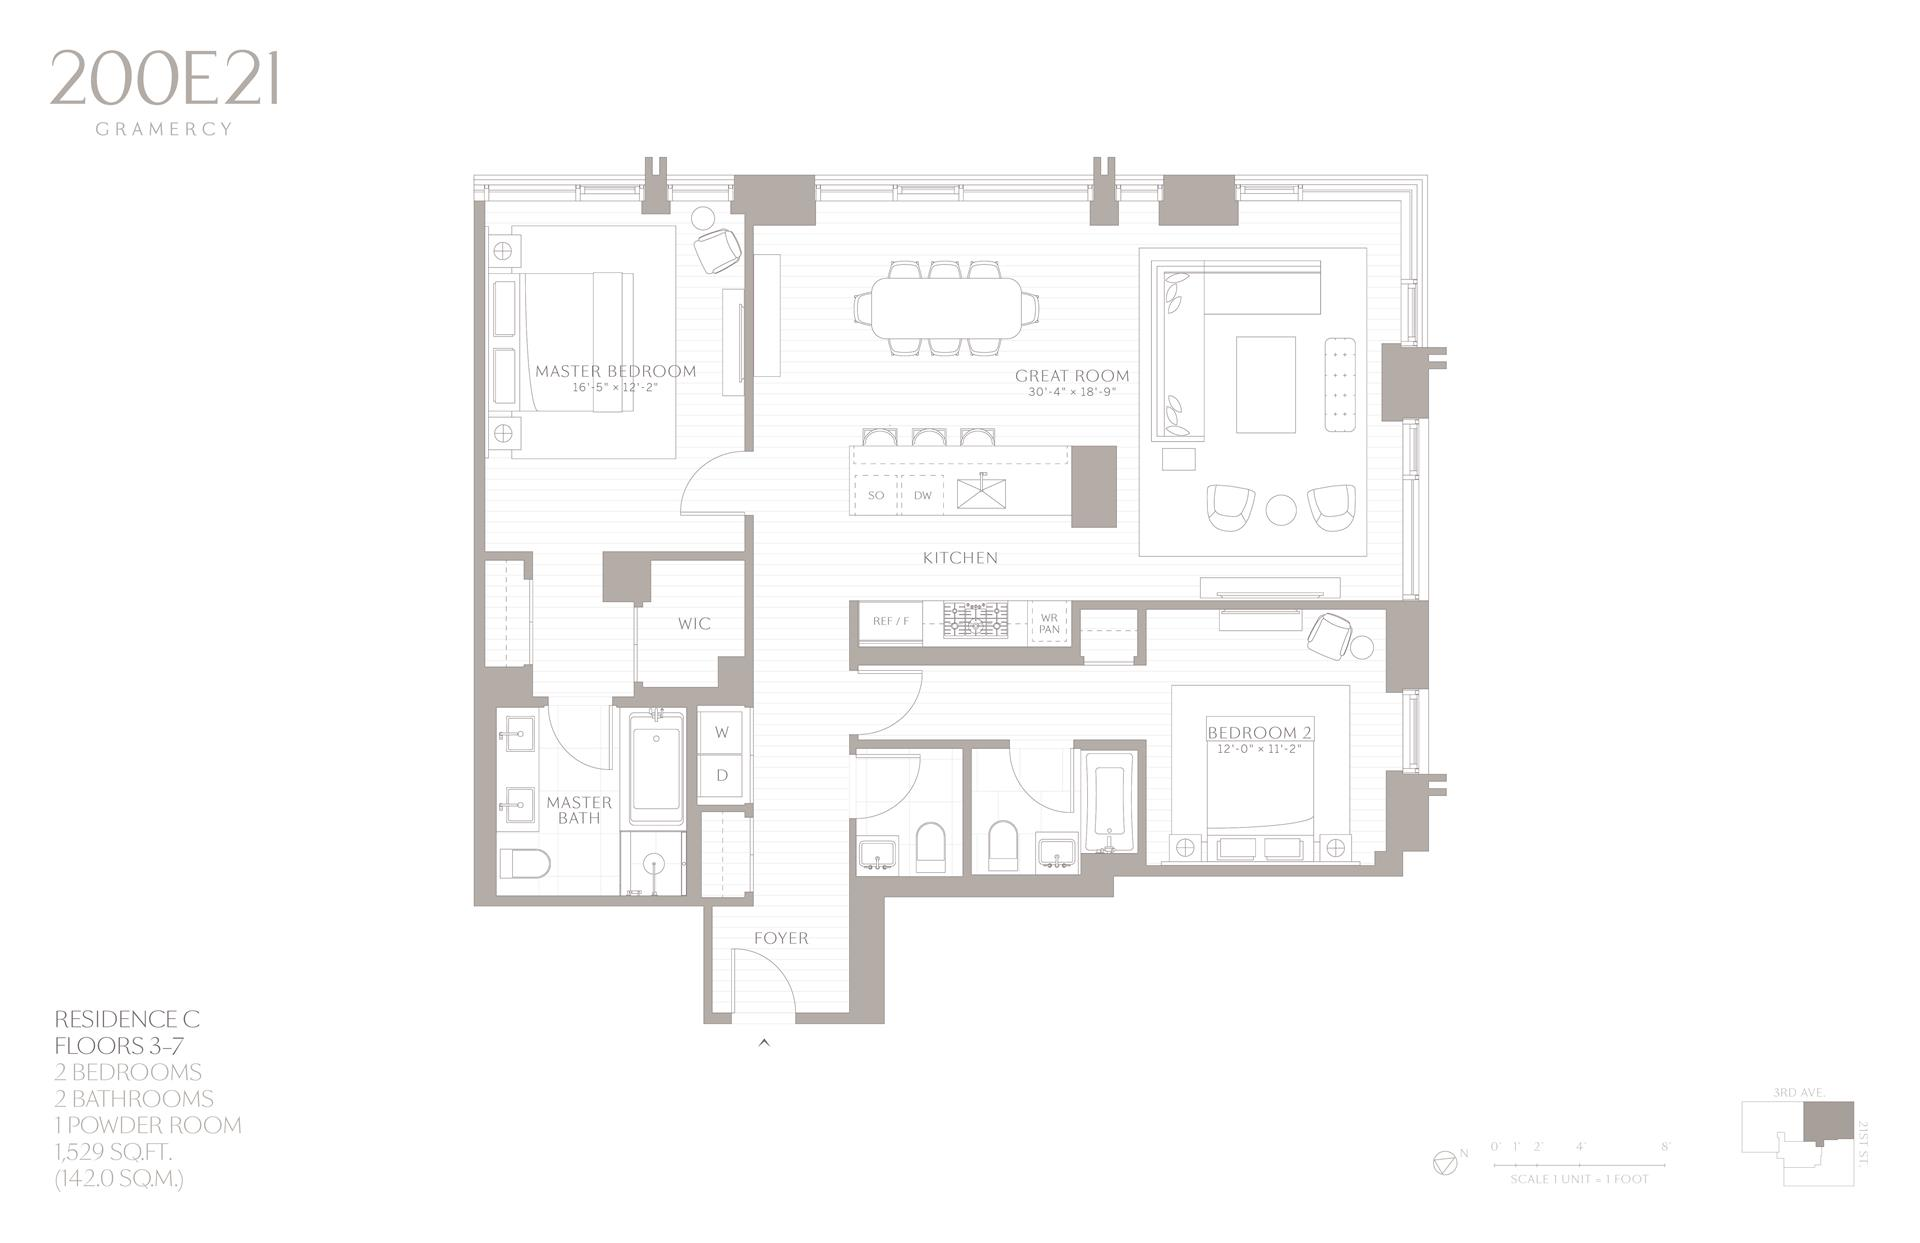 Floor plan of 200 East 21st St, 4C - Gramercy - Union Square, New York